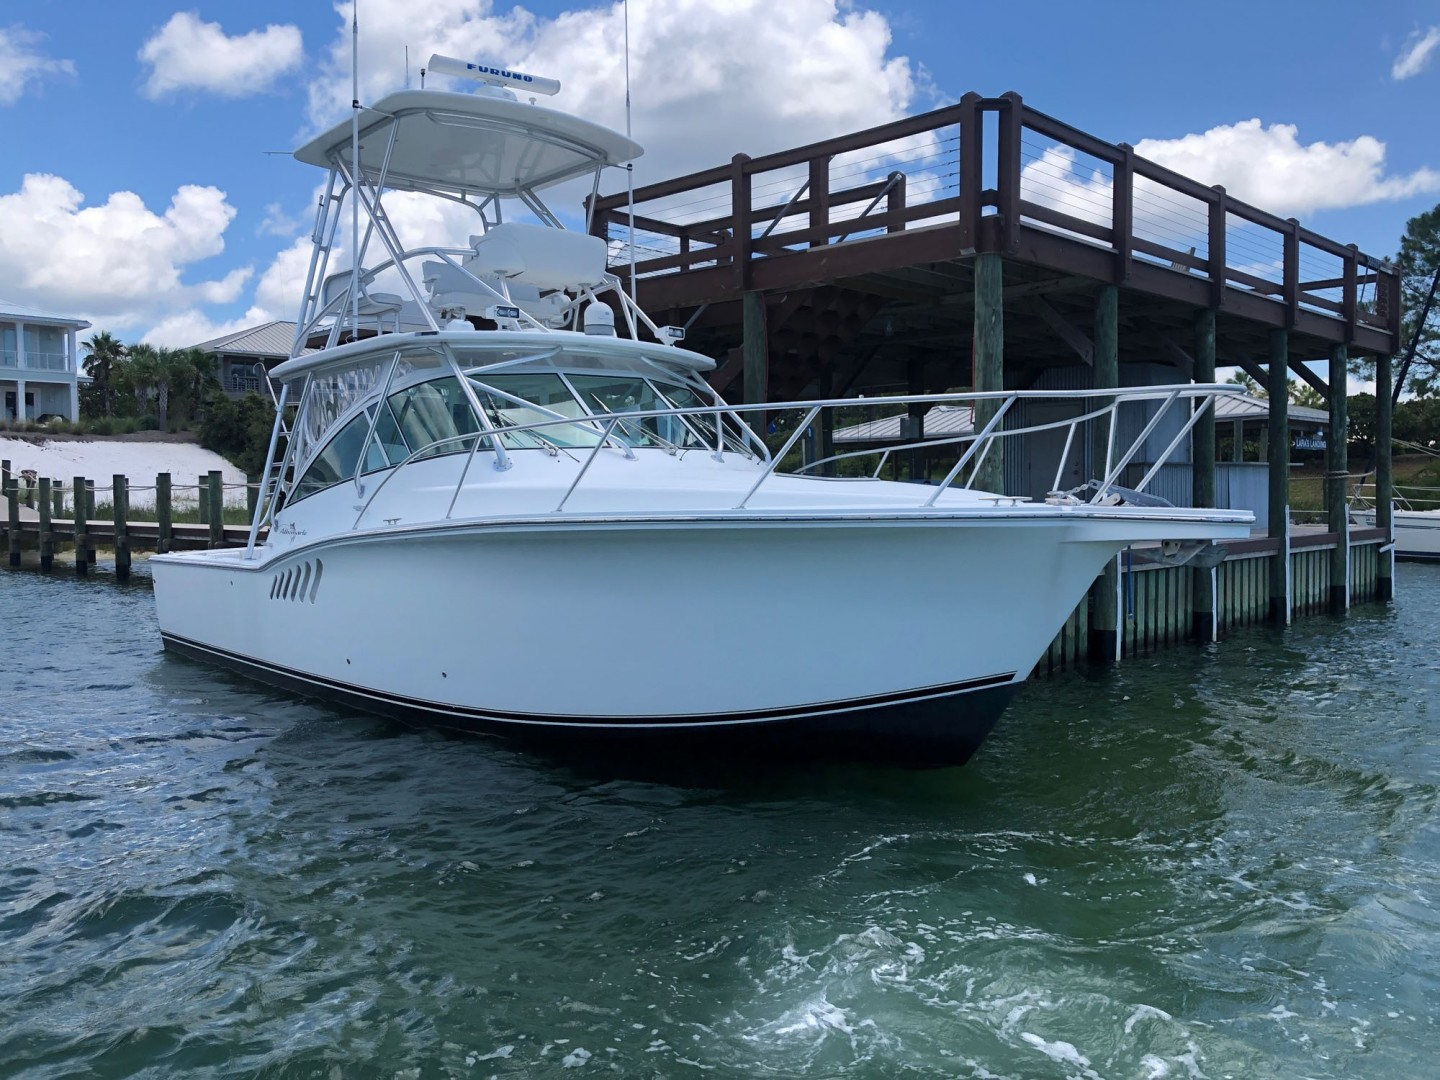 Dolphin IV is a Albemarle 360 Express Yacht For Sale in Orange Beach-Main Profile-0